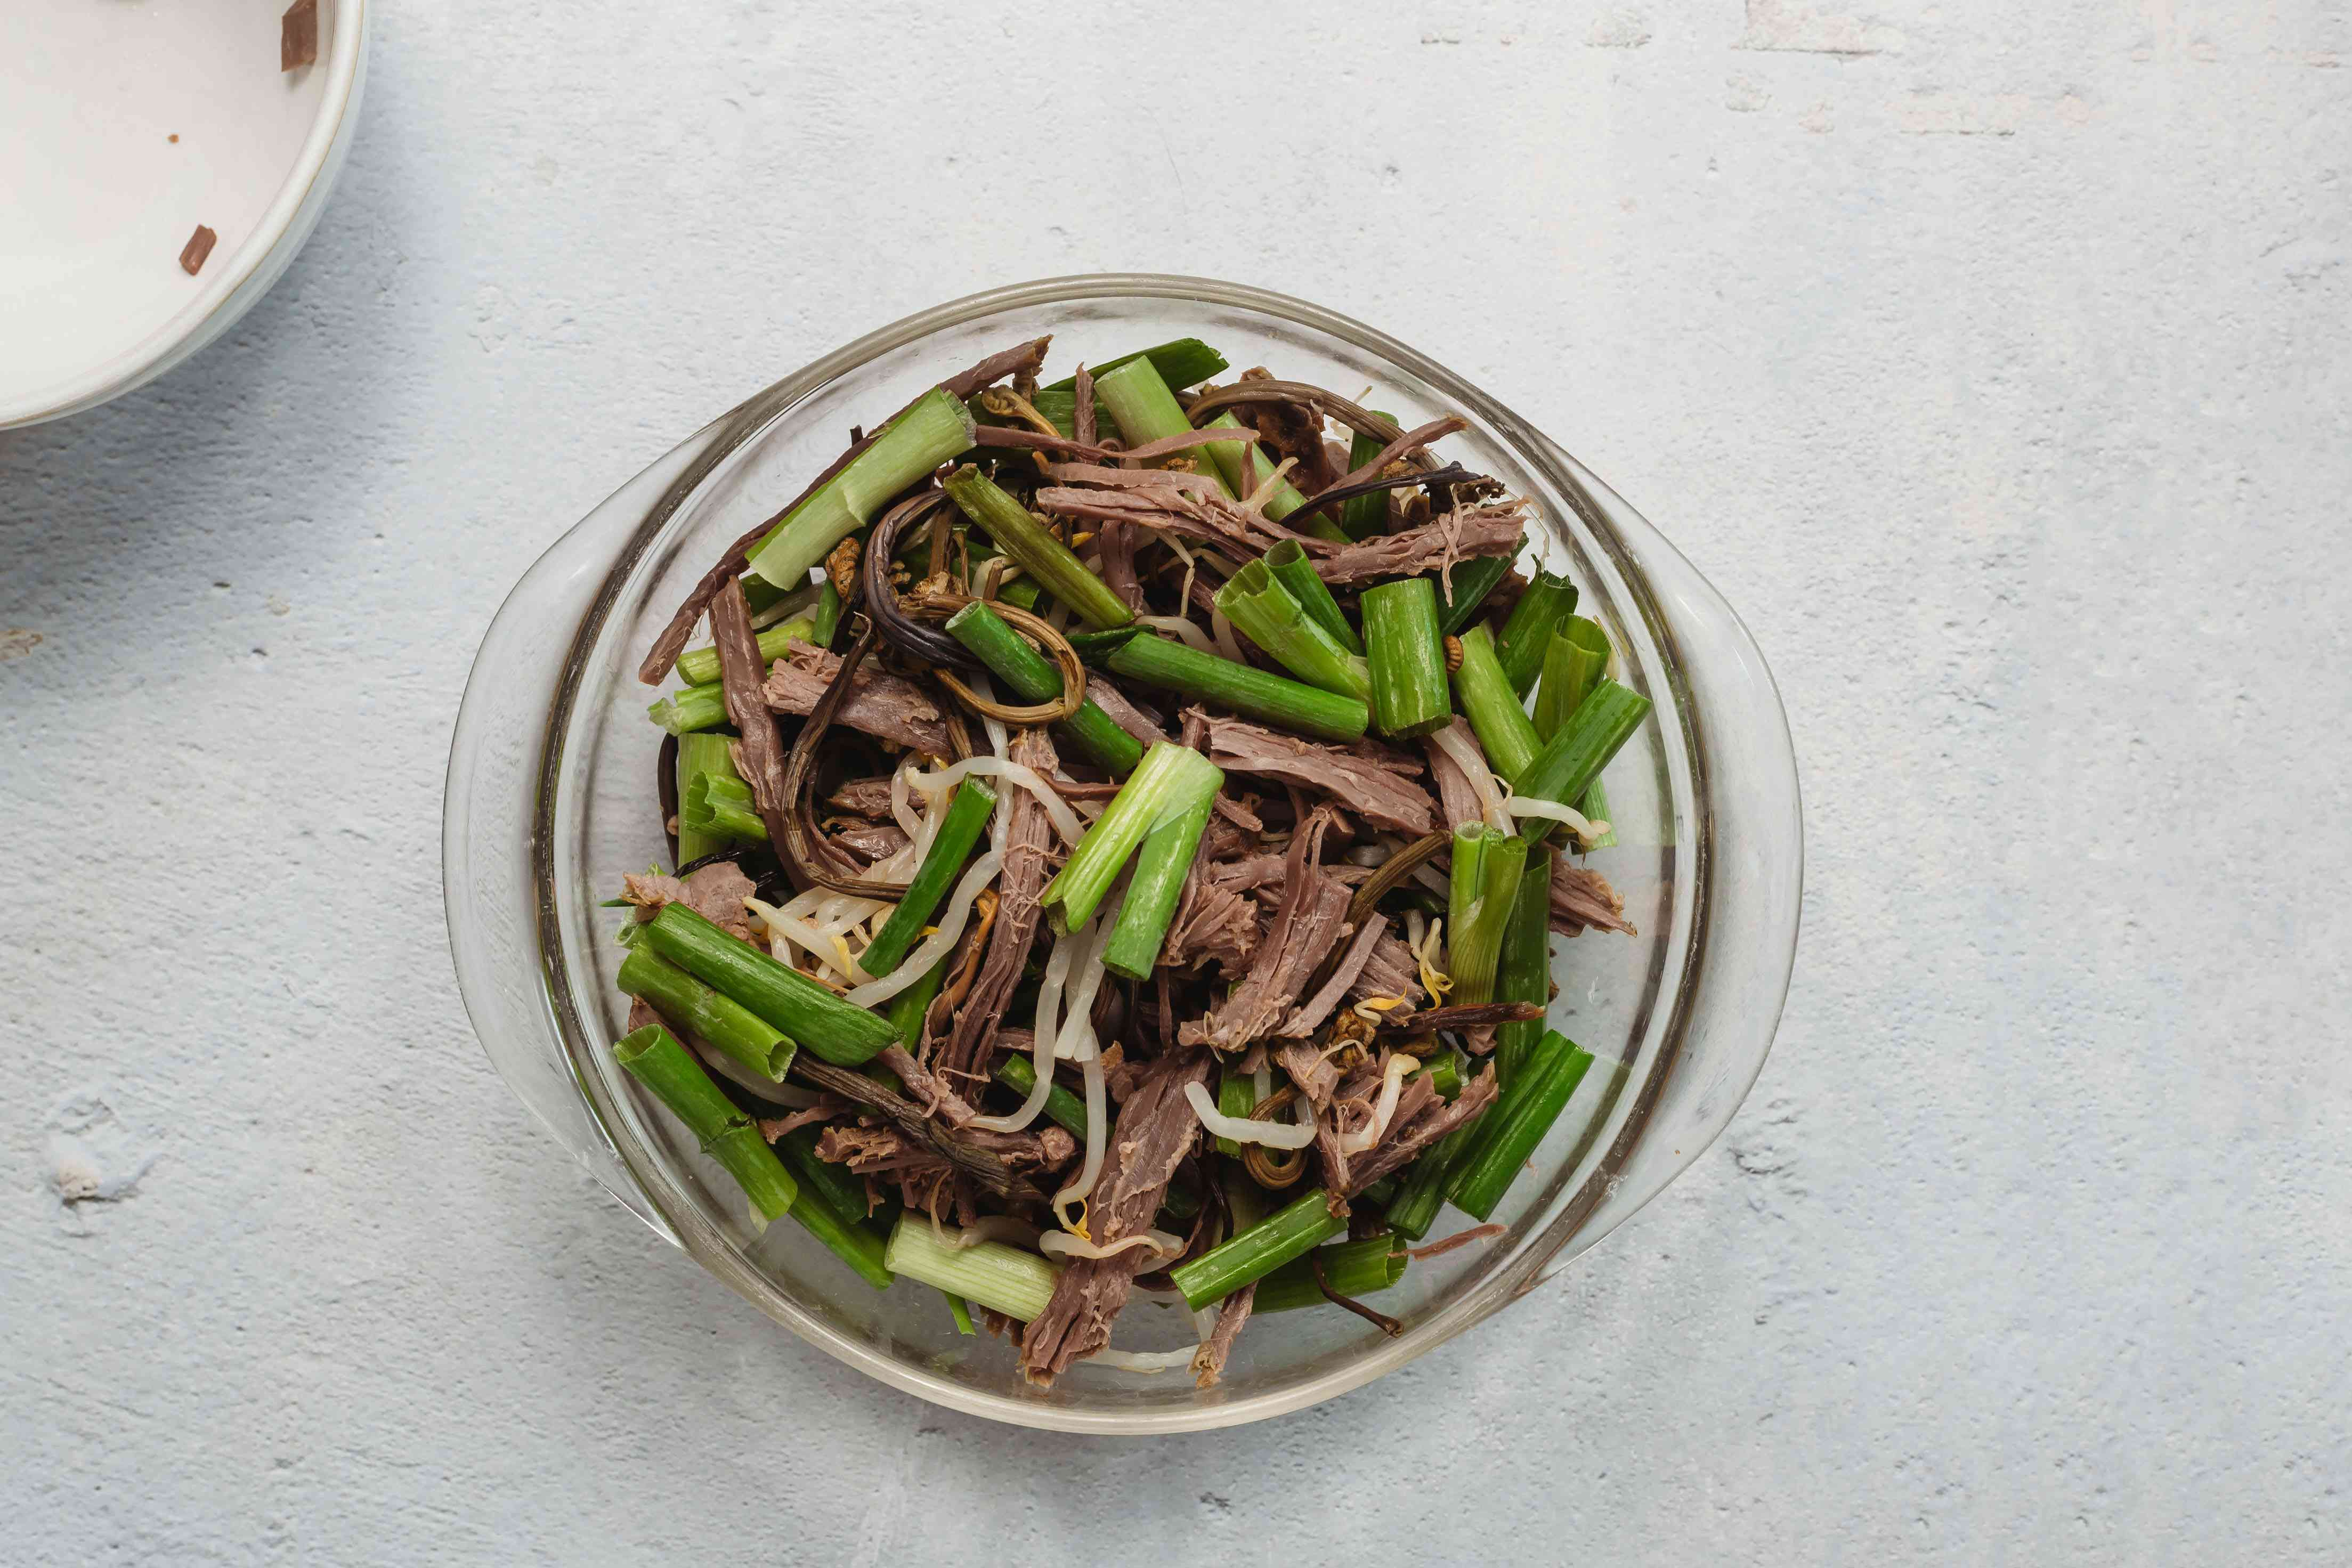 Shredded beef in a bowl with scallions and sprouts